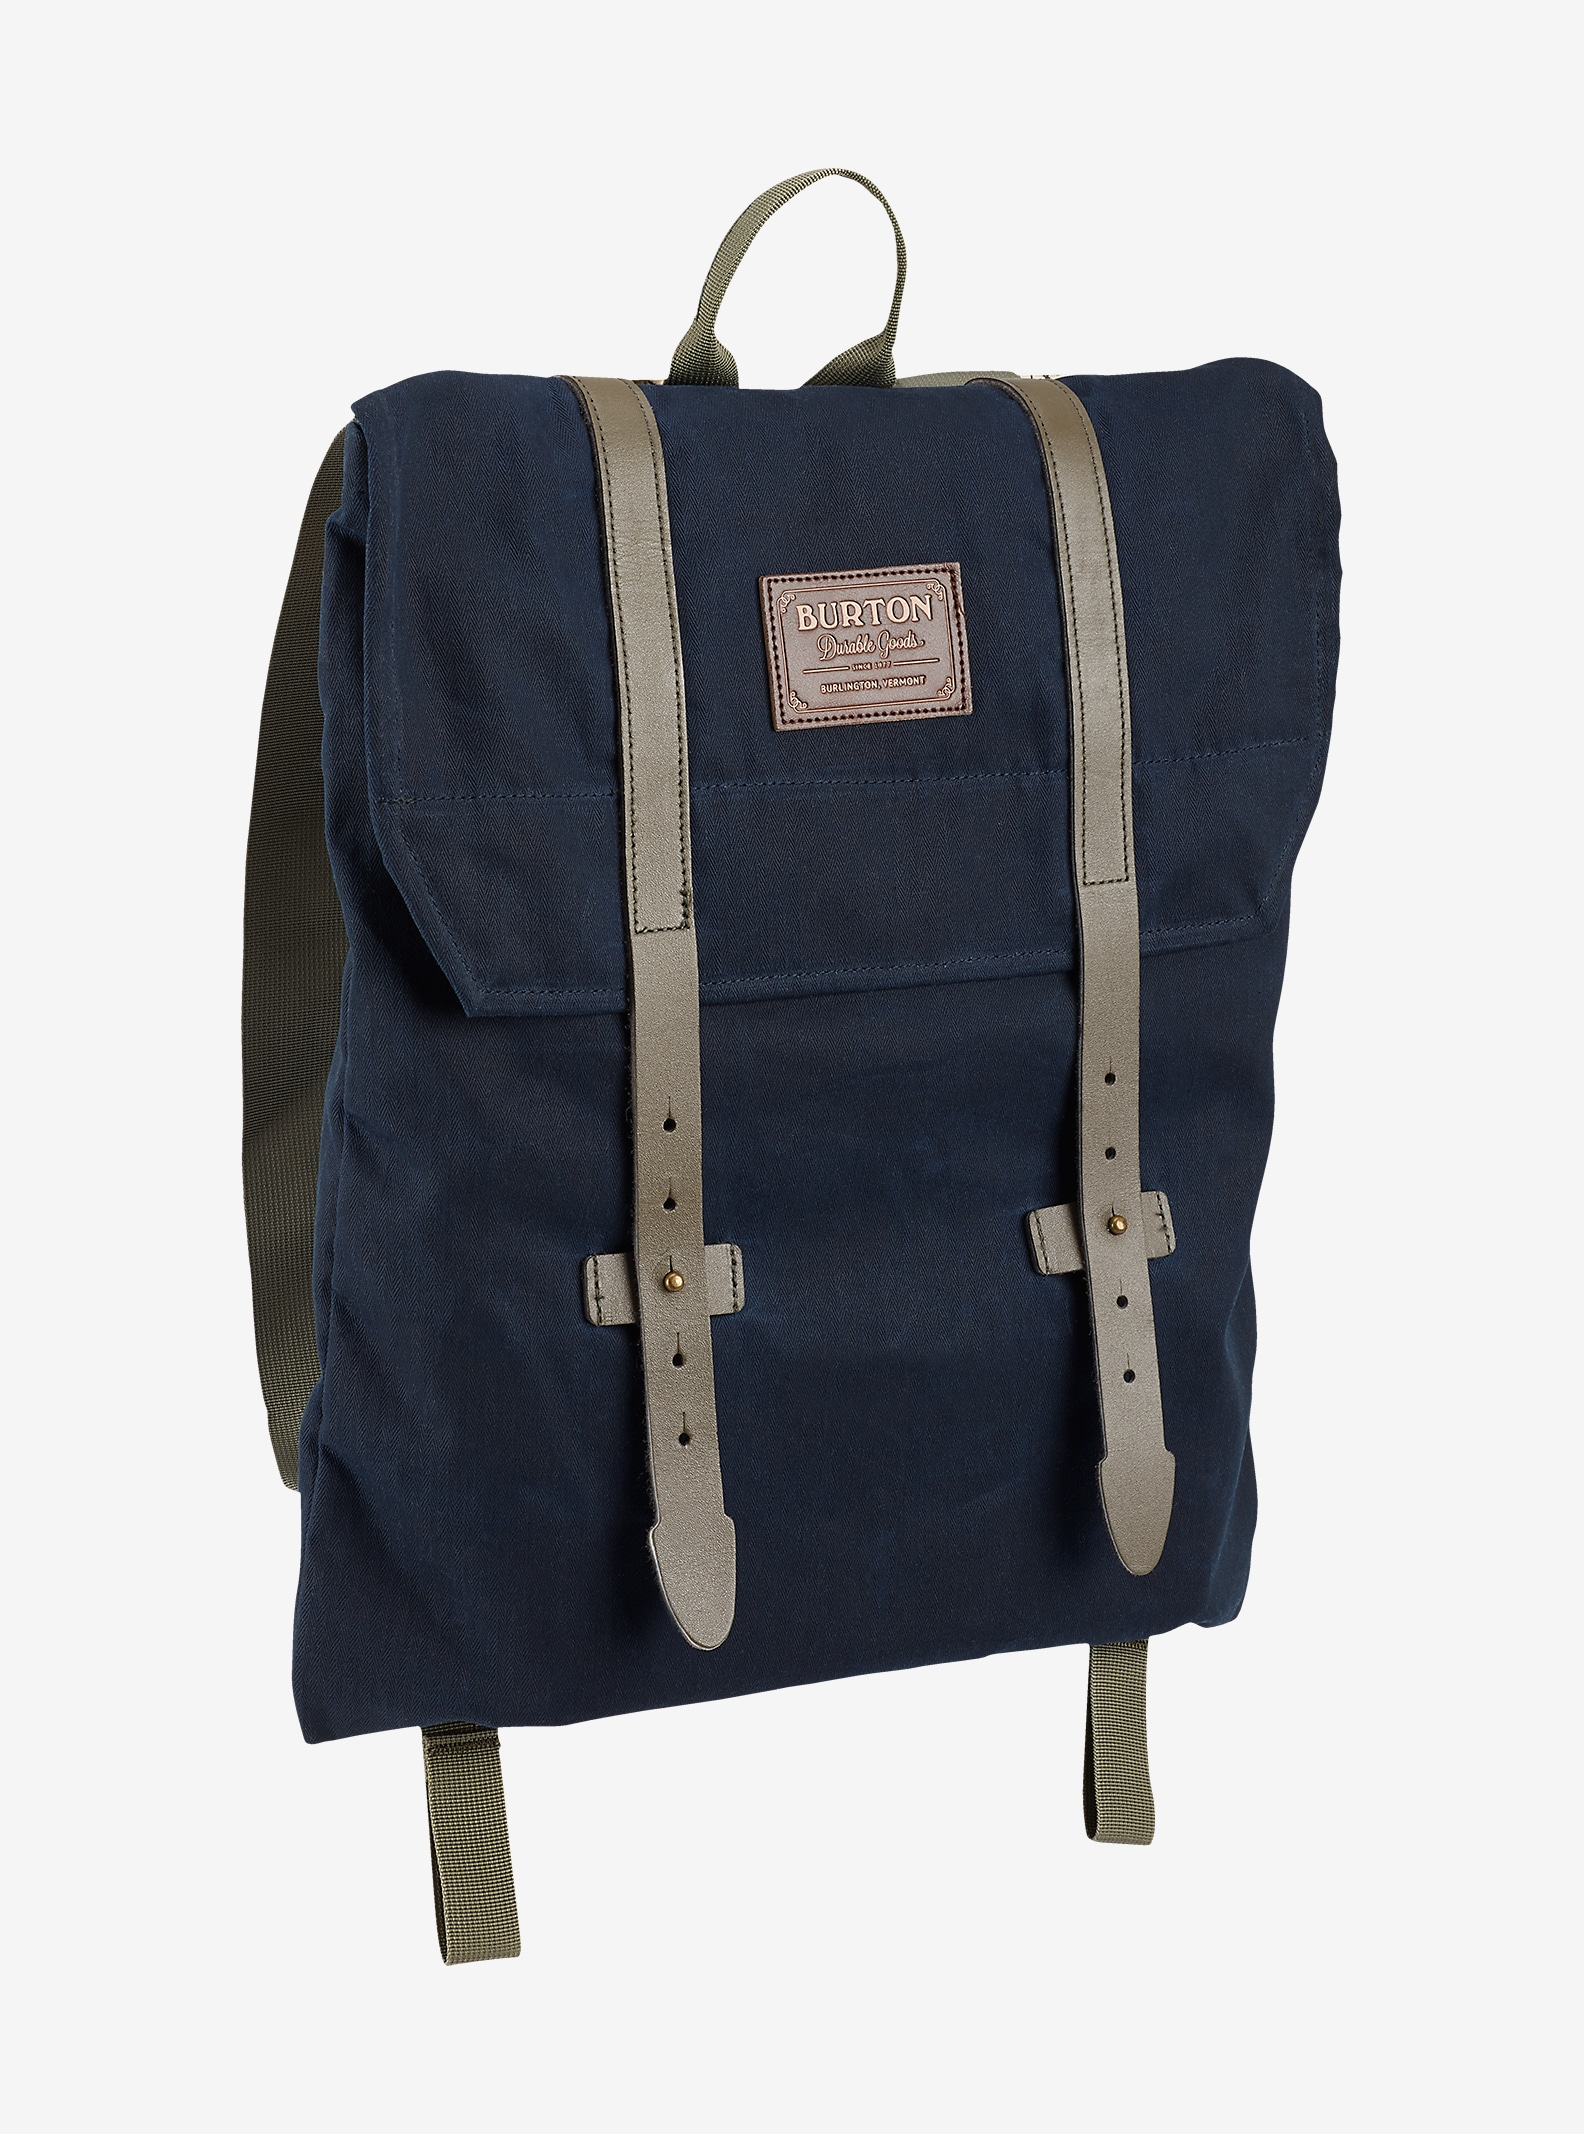 Burton Taylor Backpack shown in Midnight Eclipse [bluesign® Approved Fabric]